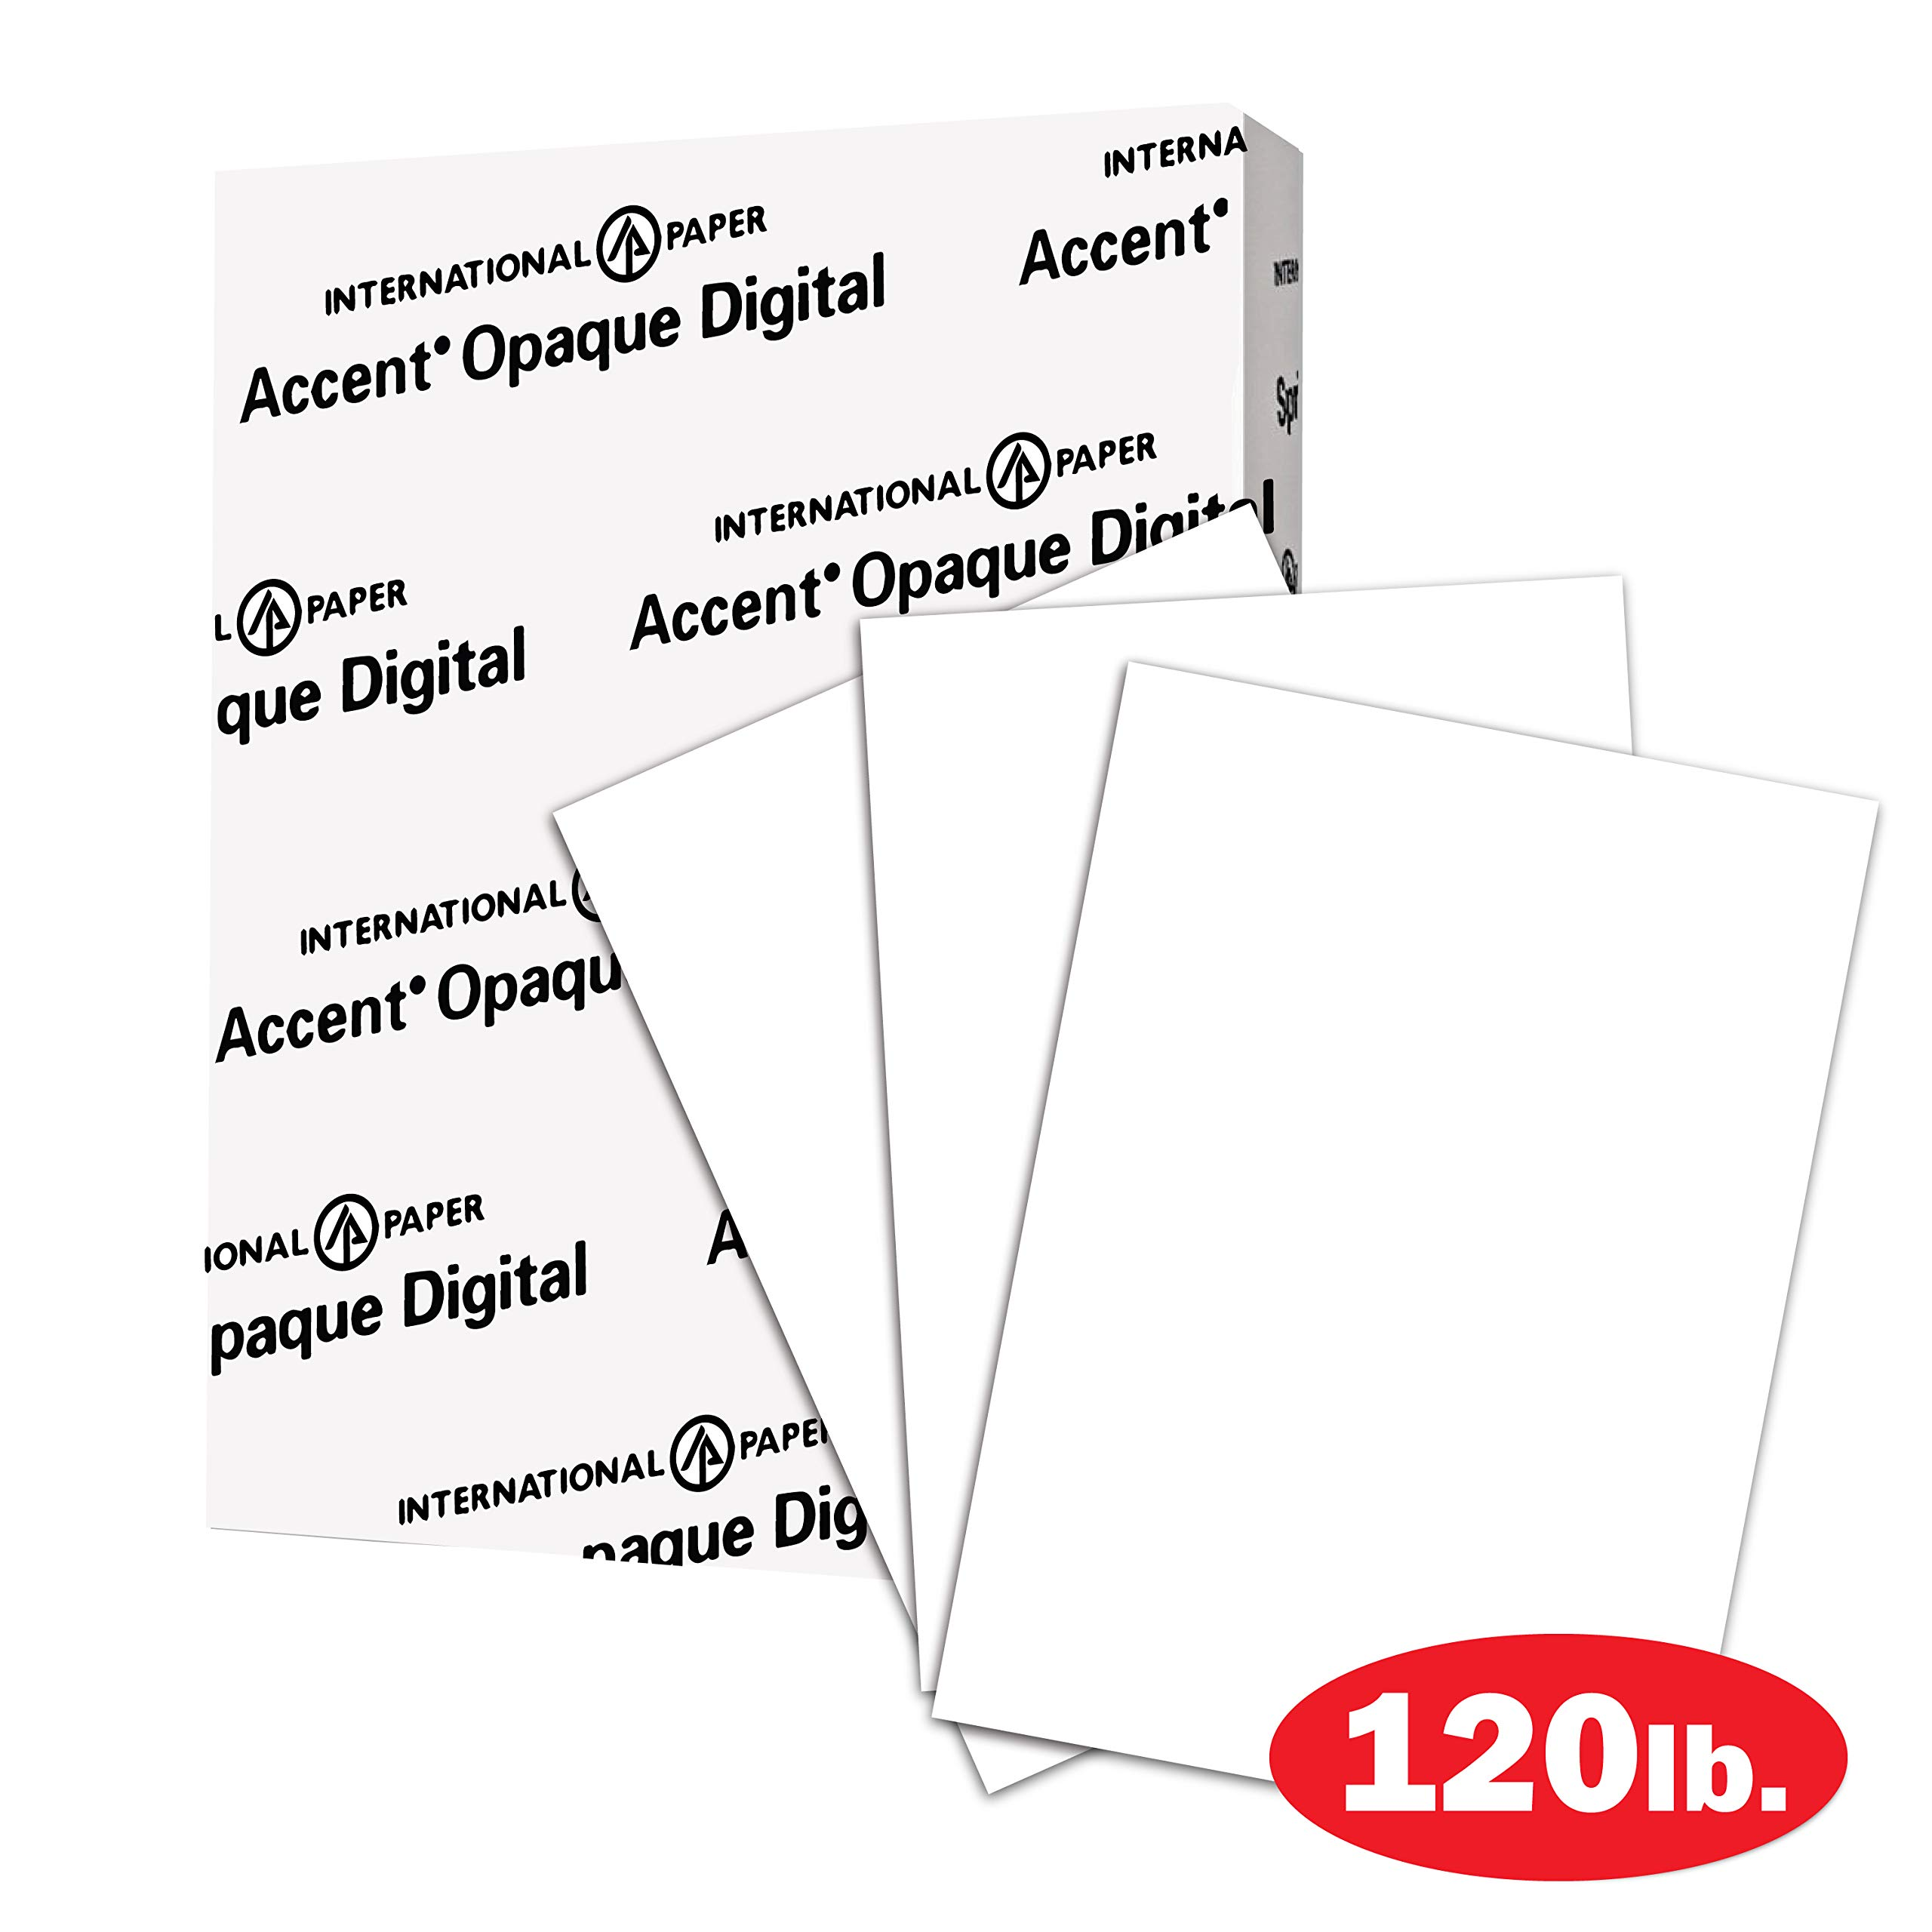 Accent Opaque Thick Cardstock Paper, White Paper, 120lb Cover, 325 gsm, 18x12 Paper, 97 Bright, 4 Ream Case / 600 Sheets, Smooth, Heavy Card Stock (189030C) by Accent (Image #2)